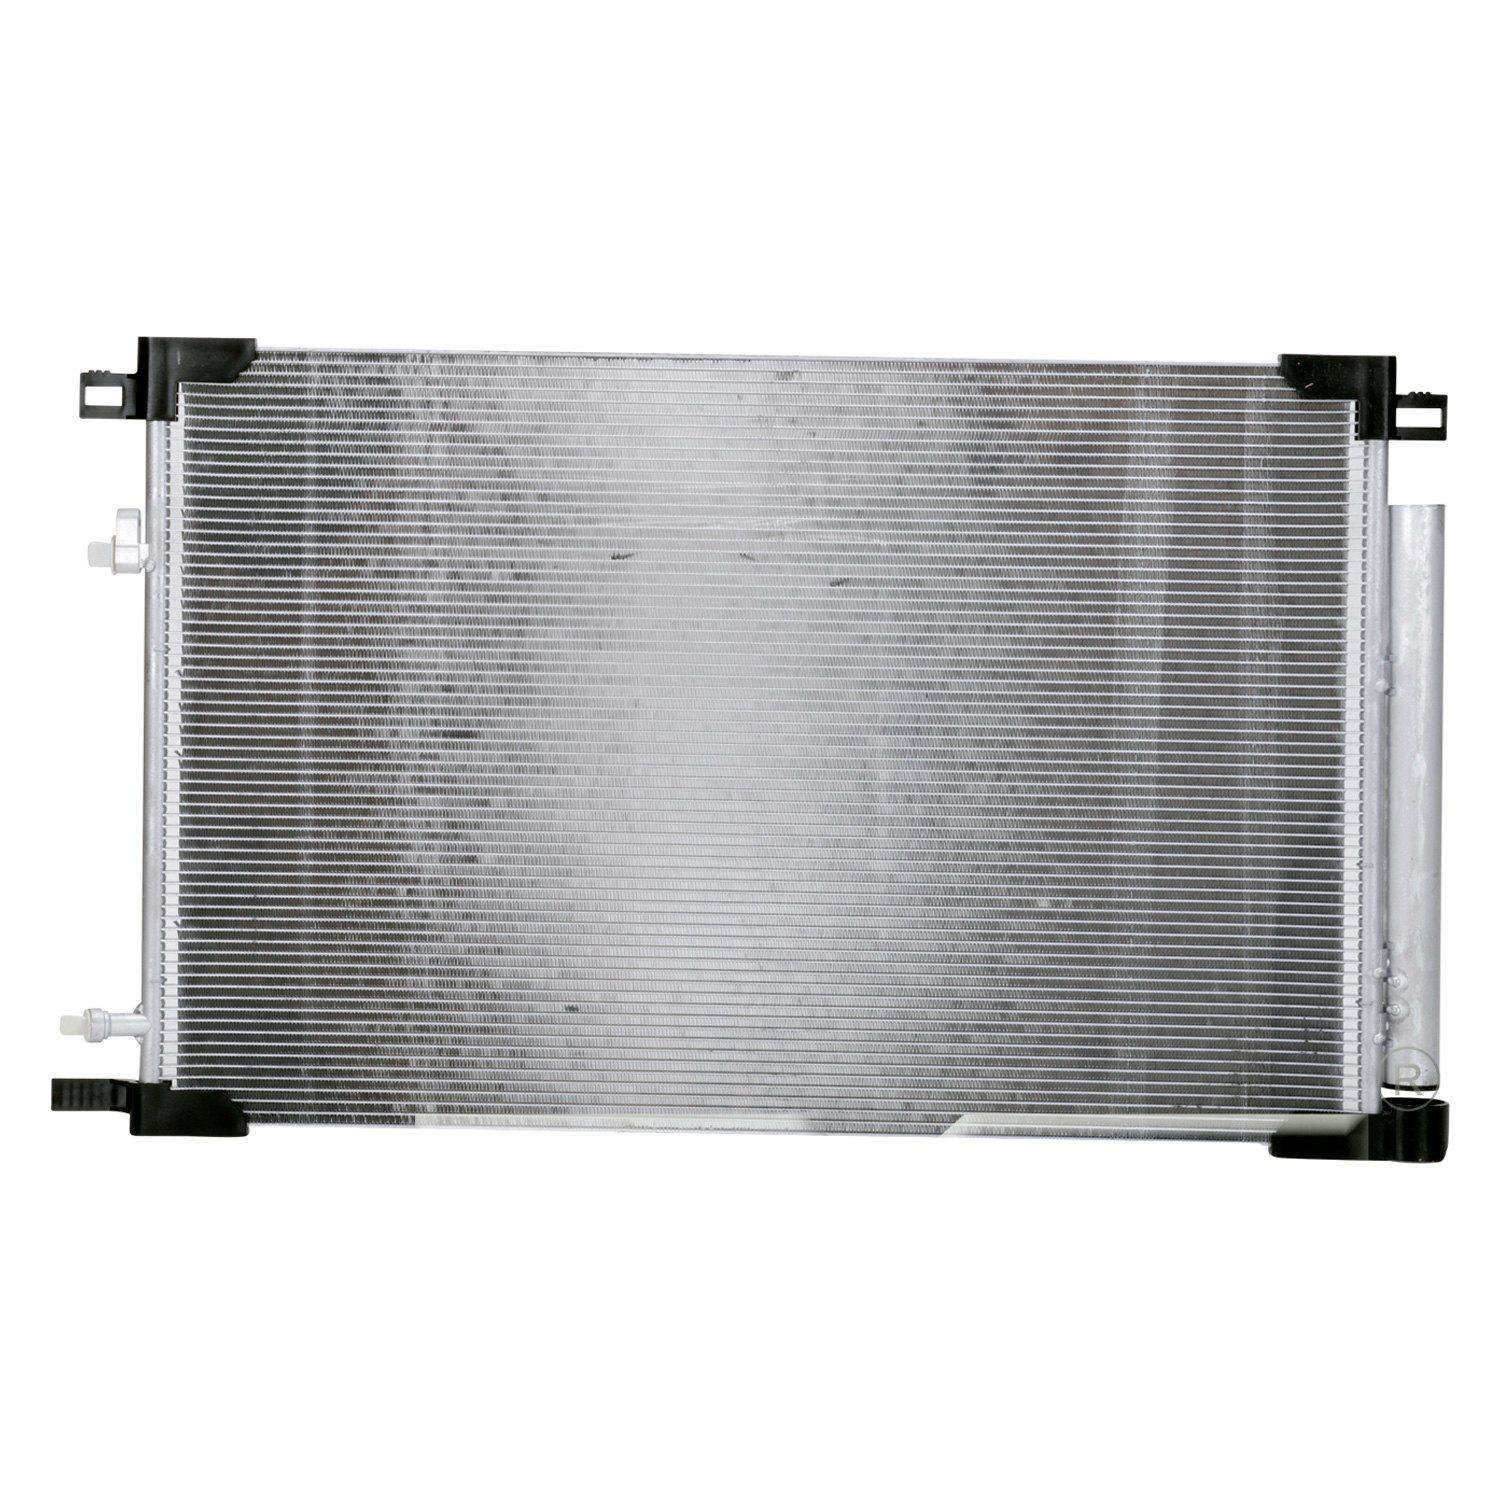 TYC 30081 Replacement Condenser for Toyota C-HR